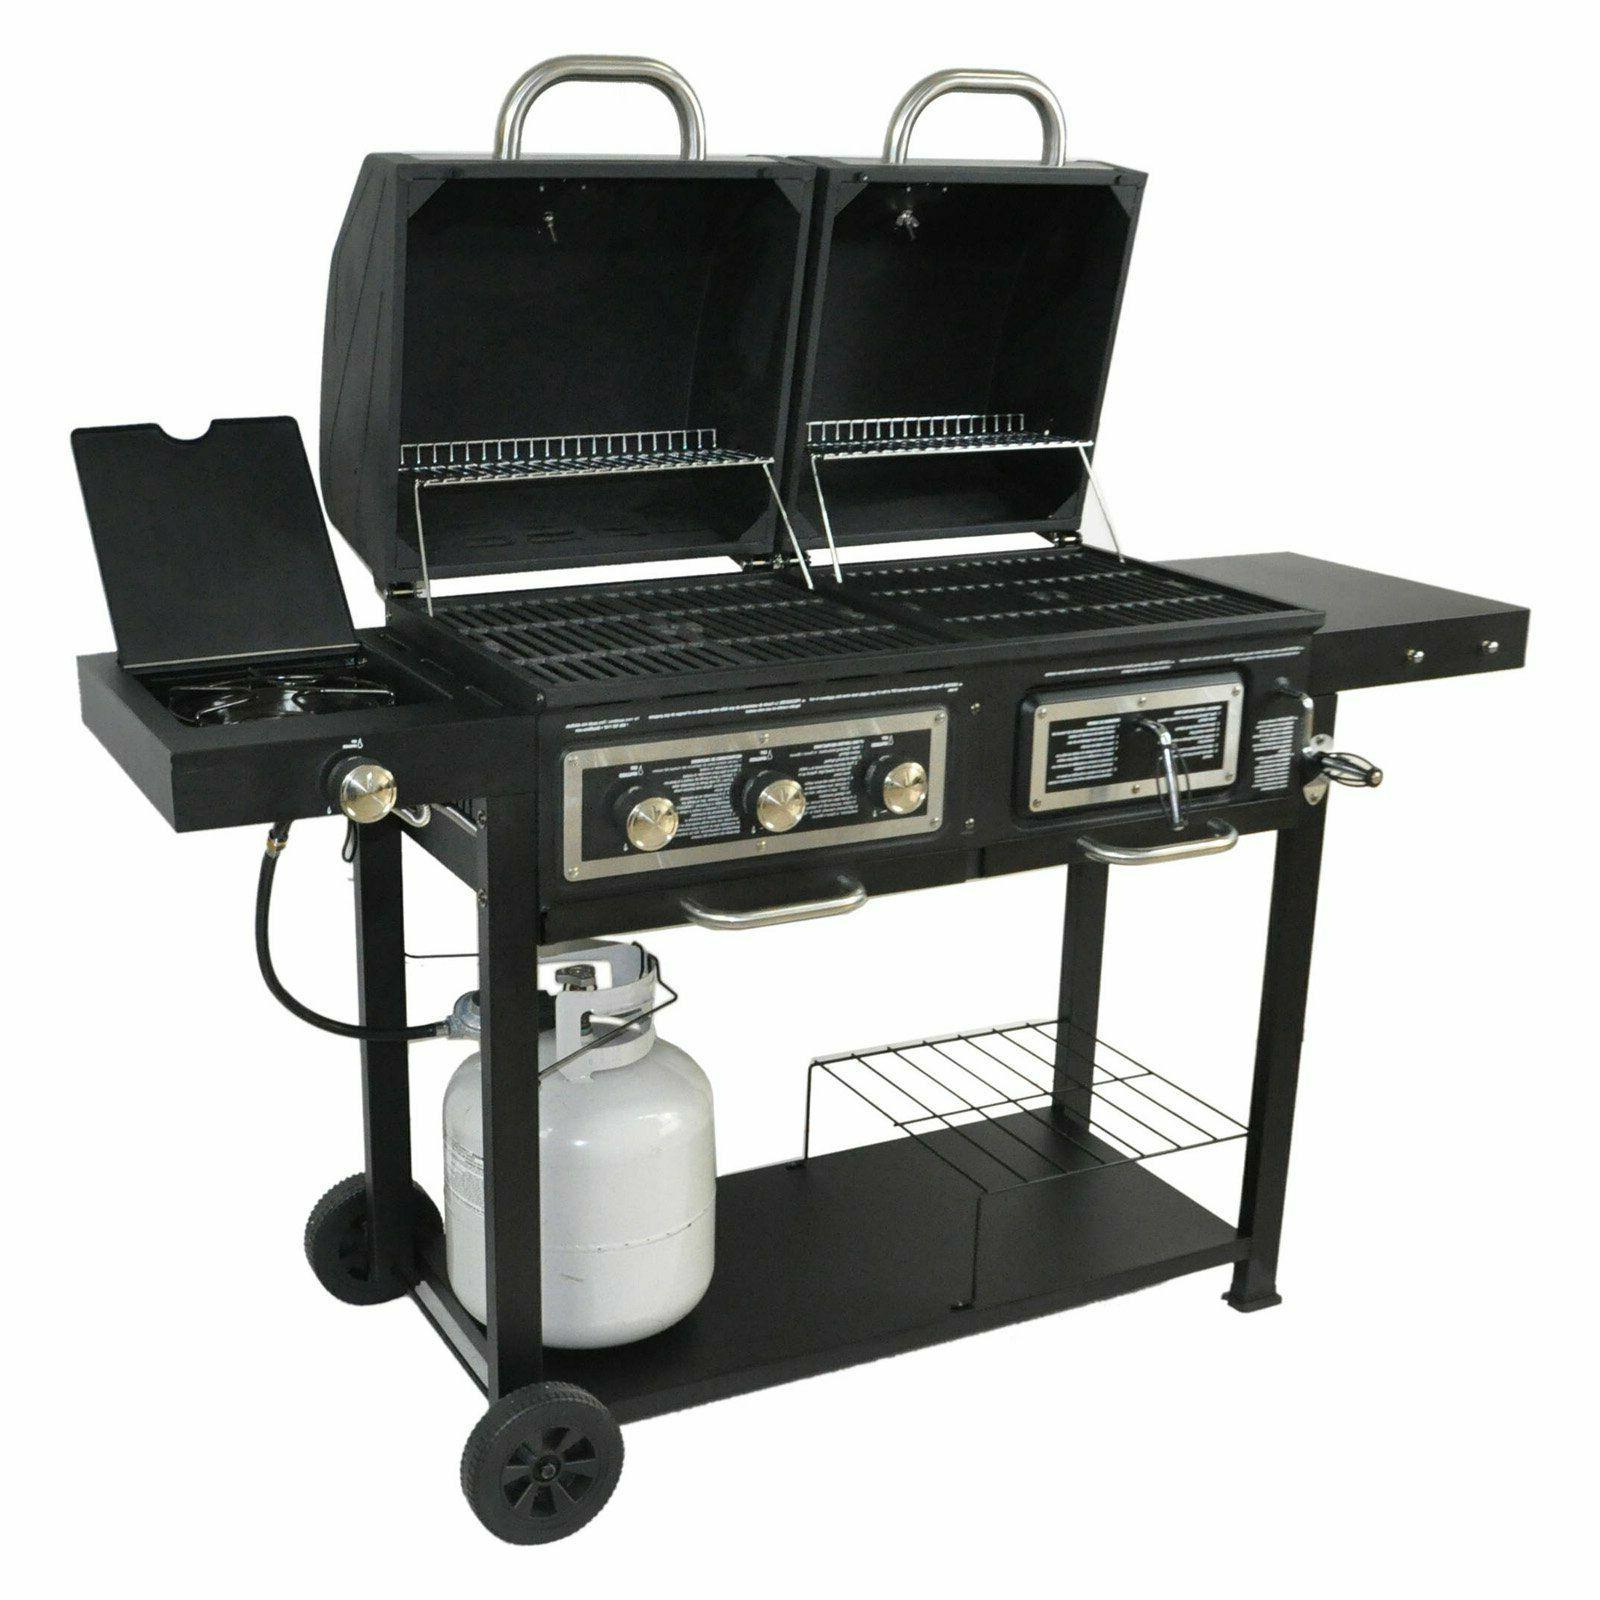 Combo Gas BBQ Barbecue w/ Side Burner